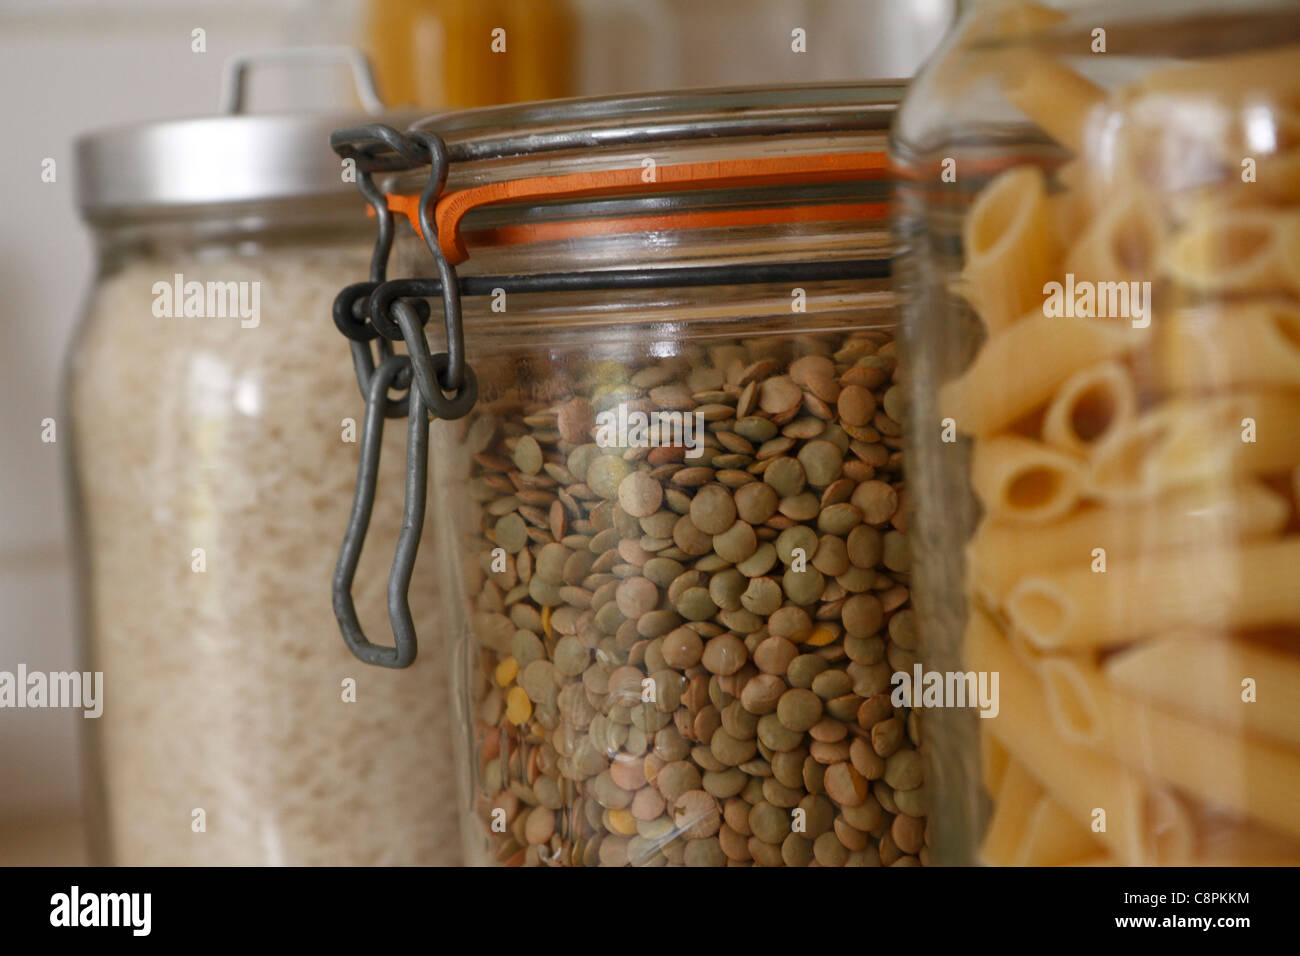 glass kitchen storage jars stock photos & glass kitchen storage